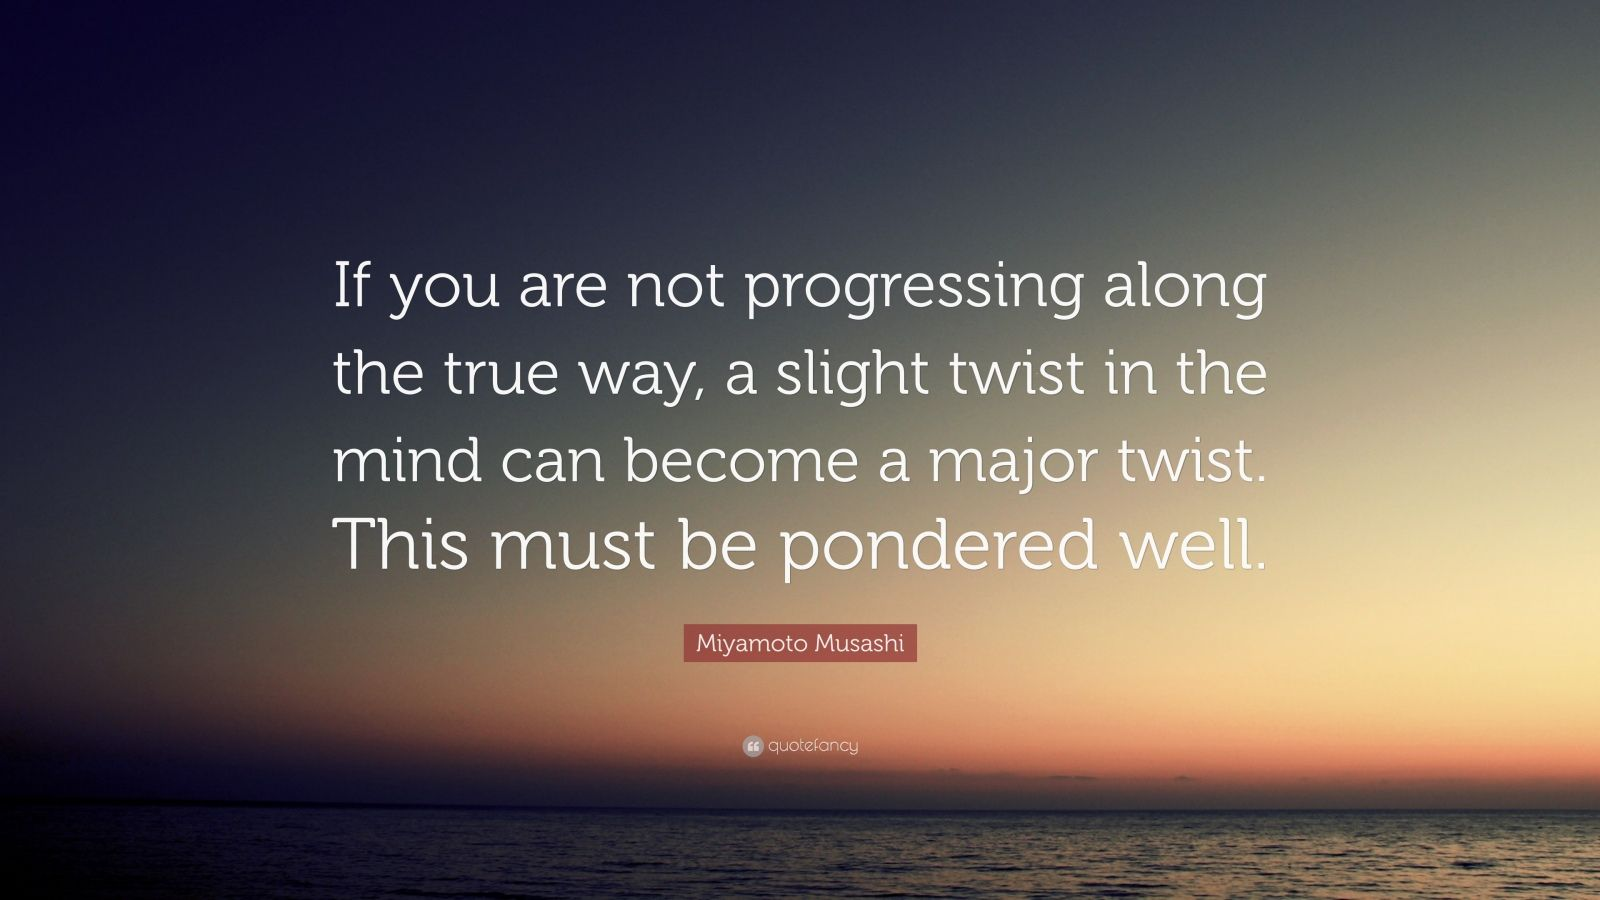 """Miyamoto Musashi Quote: """"If you are not progressing along the true way, a slight twist in the mind can become a major twist. This must be pondered well."""""""